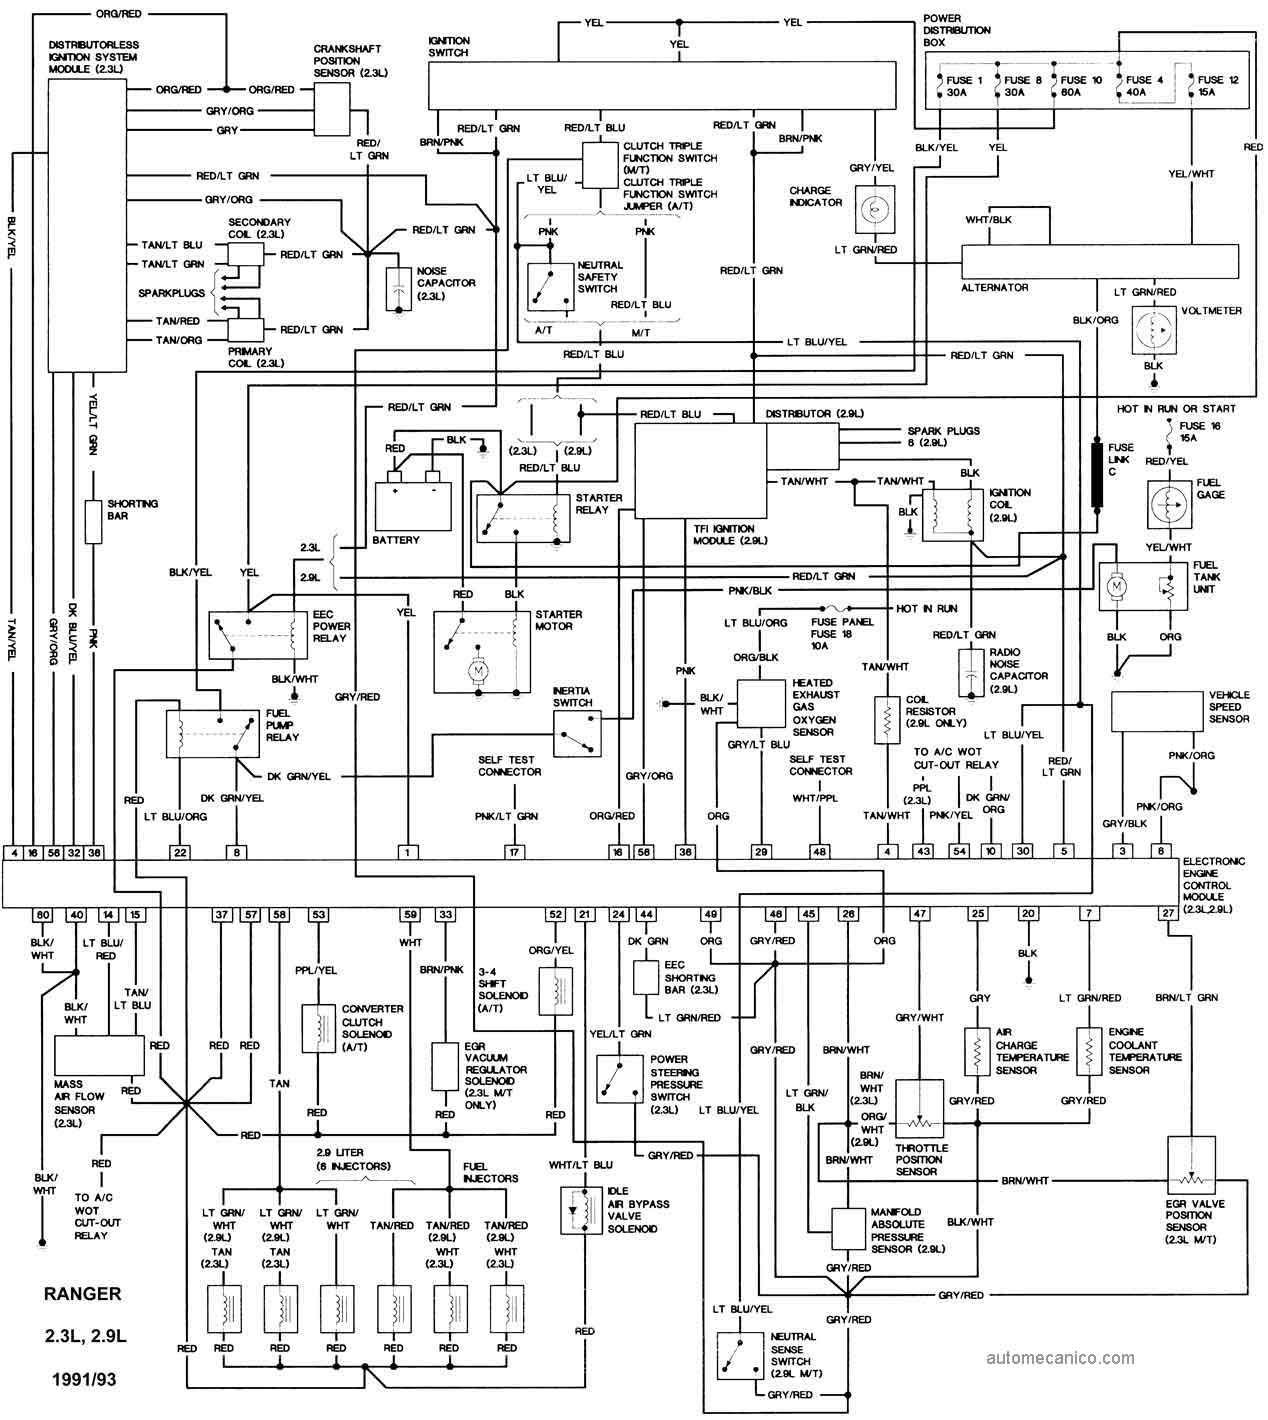 Imagranger01 on 96 explorer wiring diagram